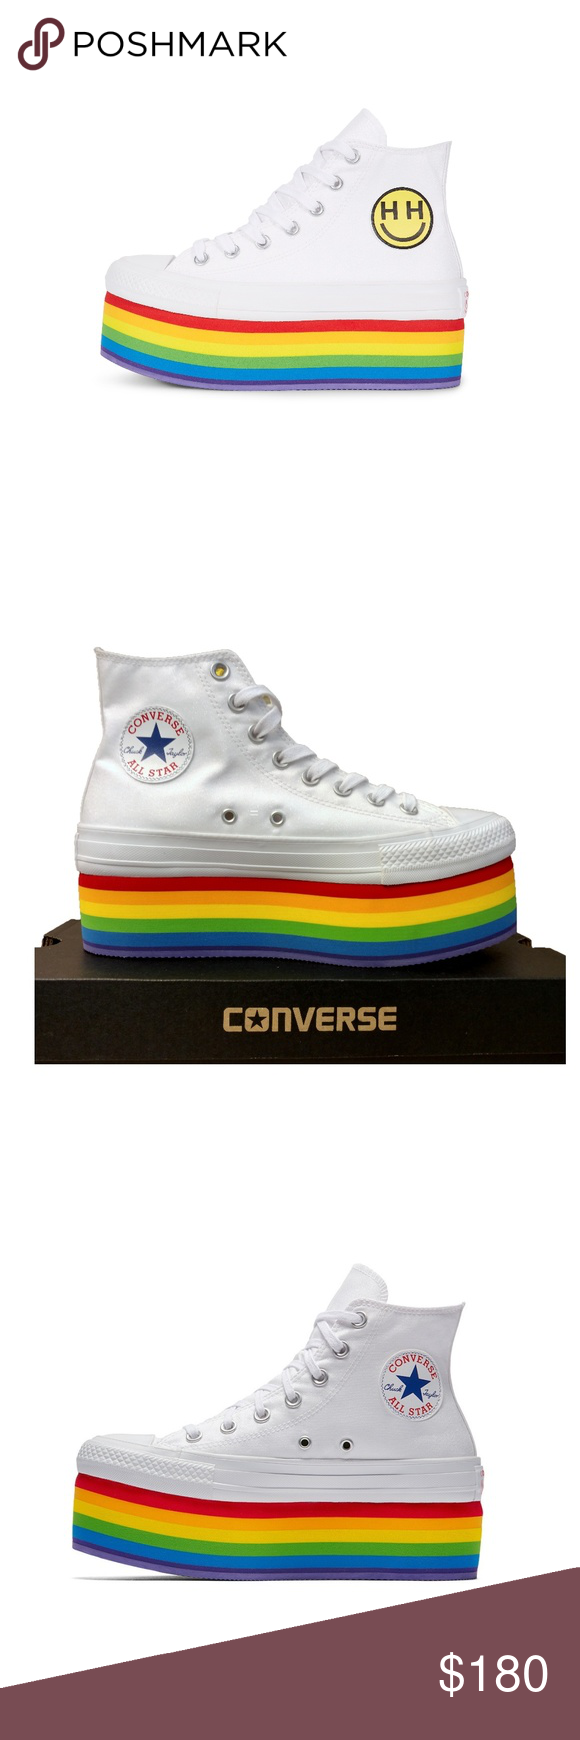 dbb6543d0f6 Converse PRIDE x Miley Cyrus Chuck Taylor Shoes Condition: Brand new with  lidless box Size: US Women's 8 Color: White | Red | Yellow | Blue | Rainbow  Style: ...